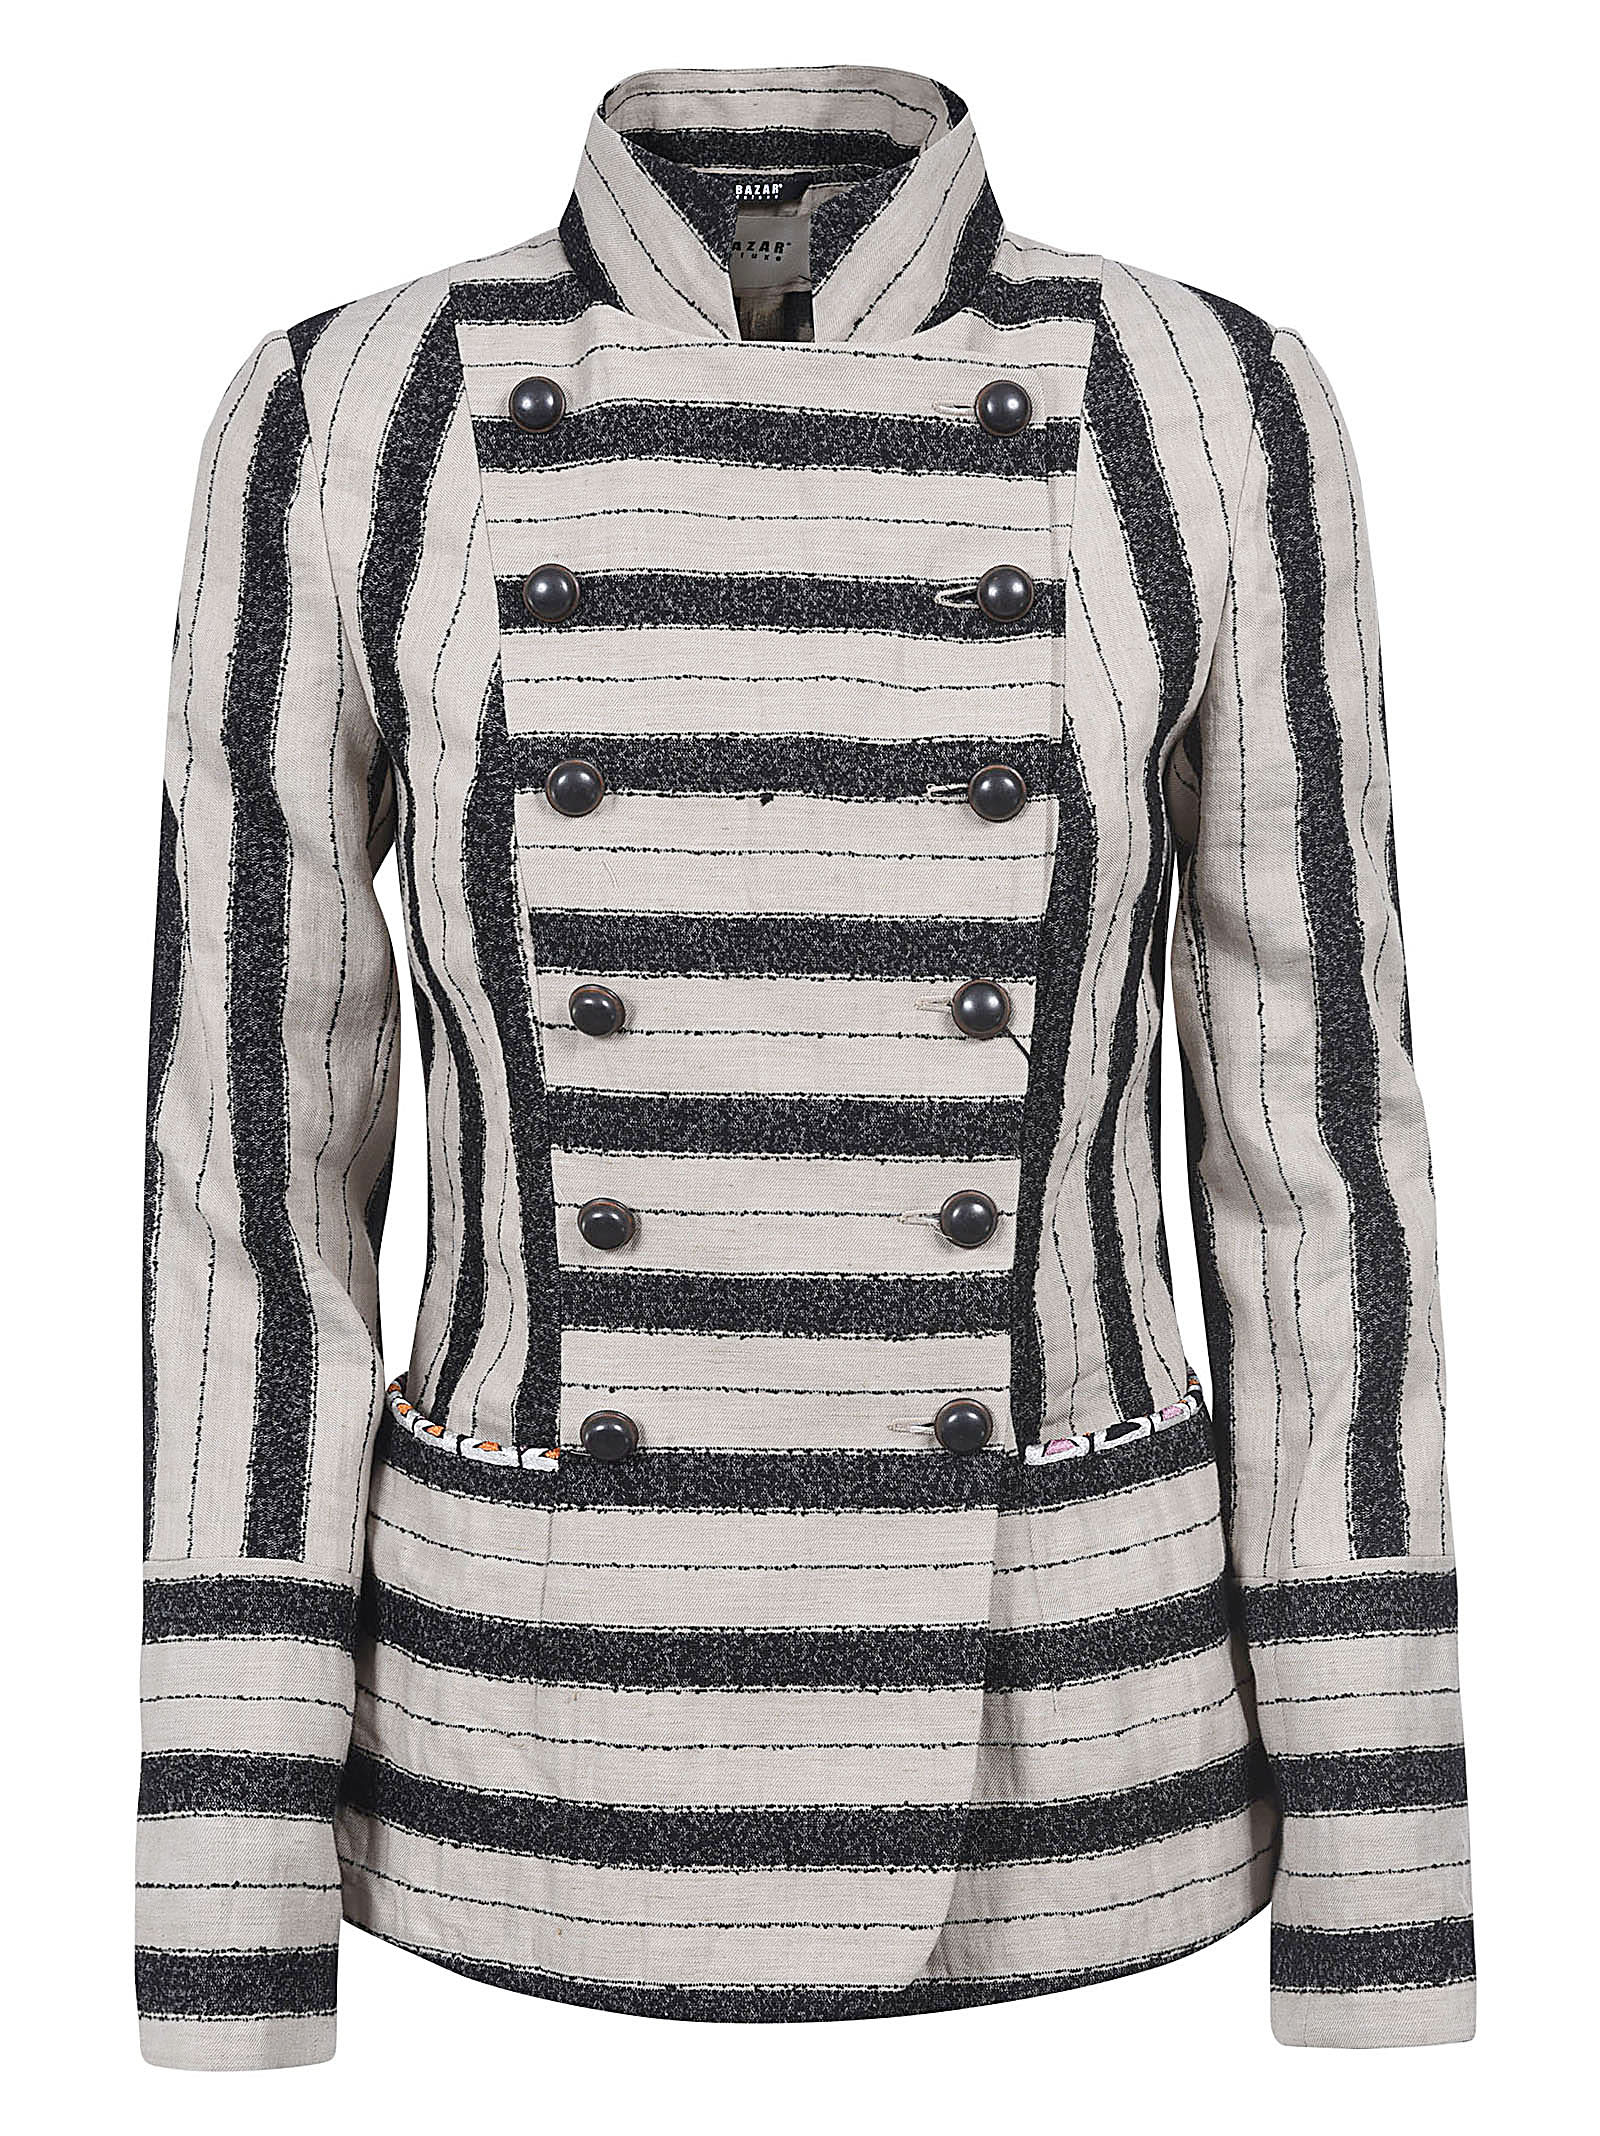 Bazar Deluxe Double-breasted Stripe Patterned Jacket